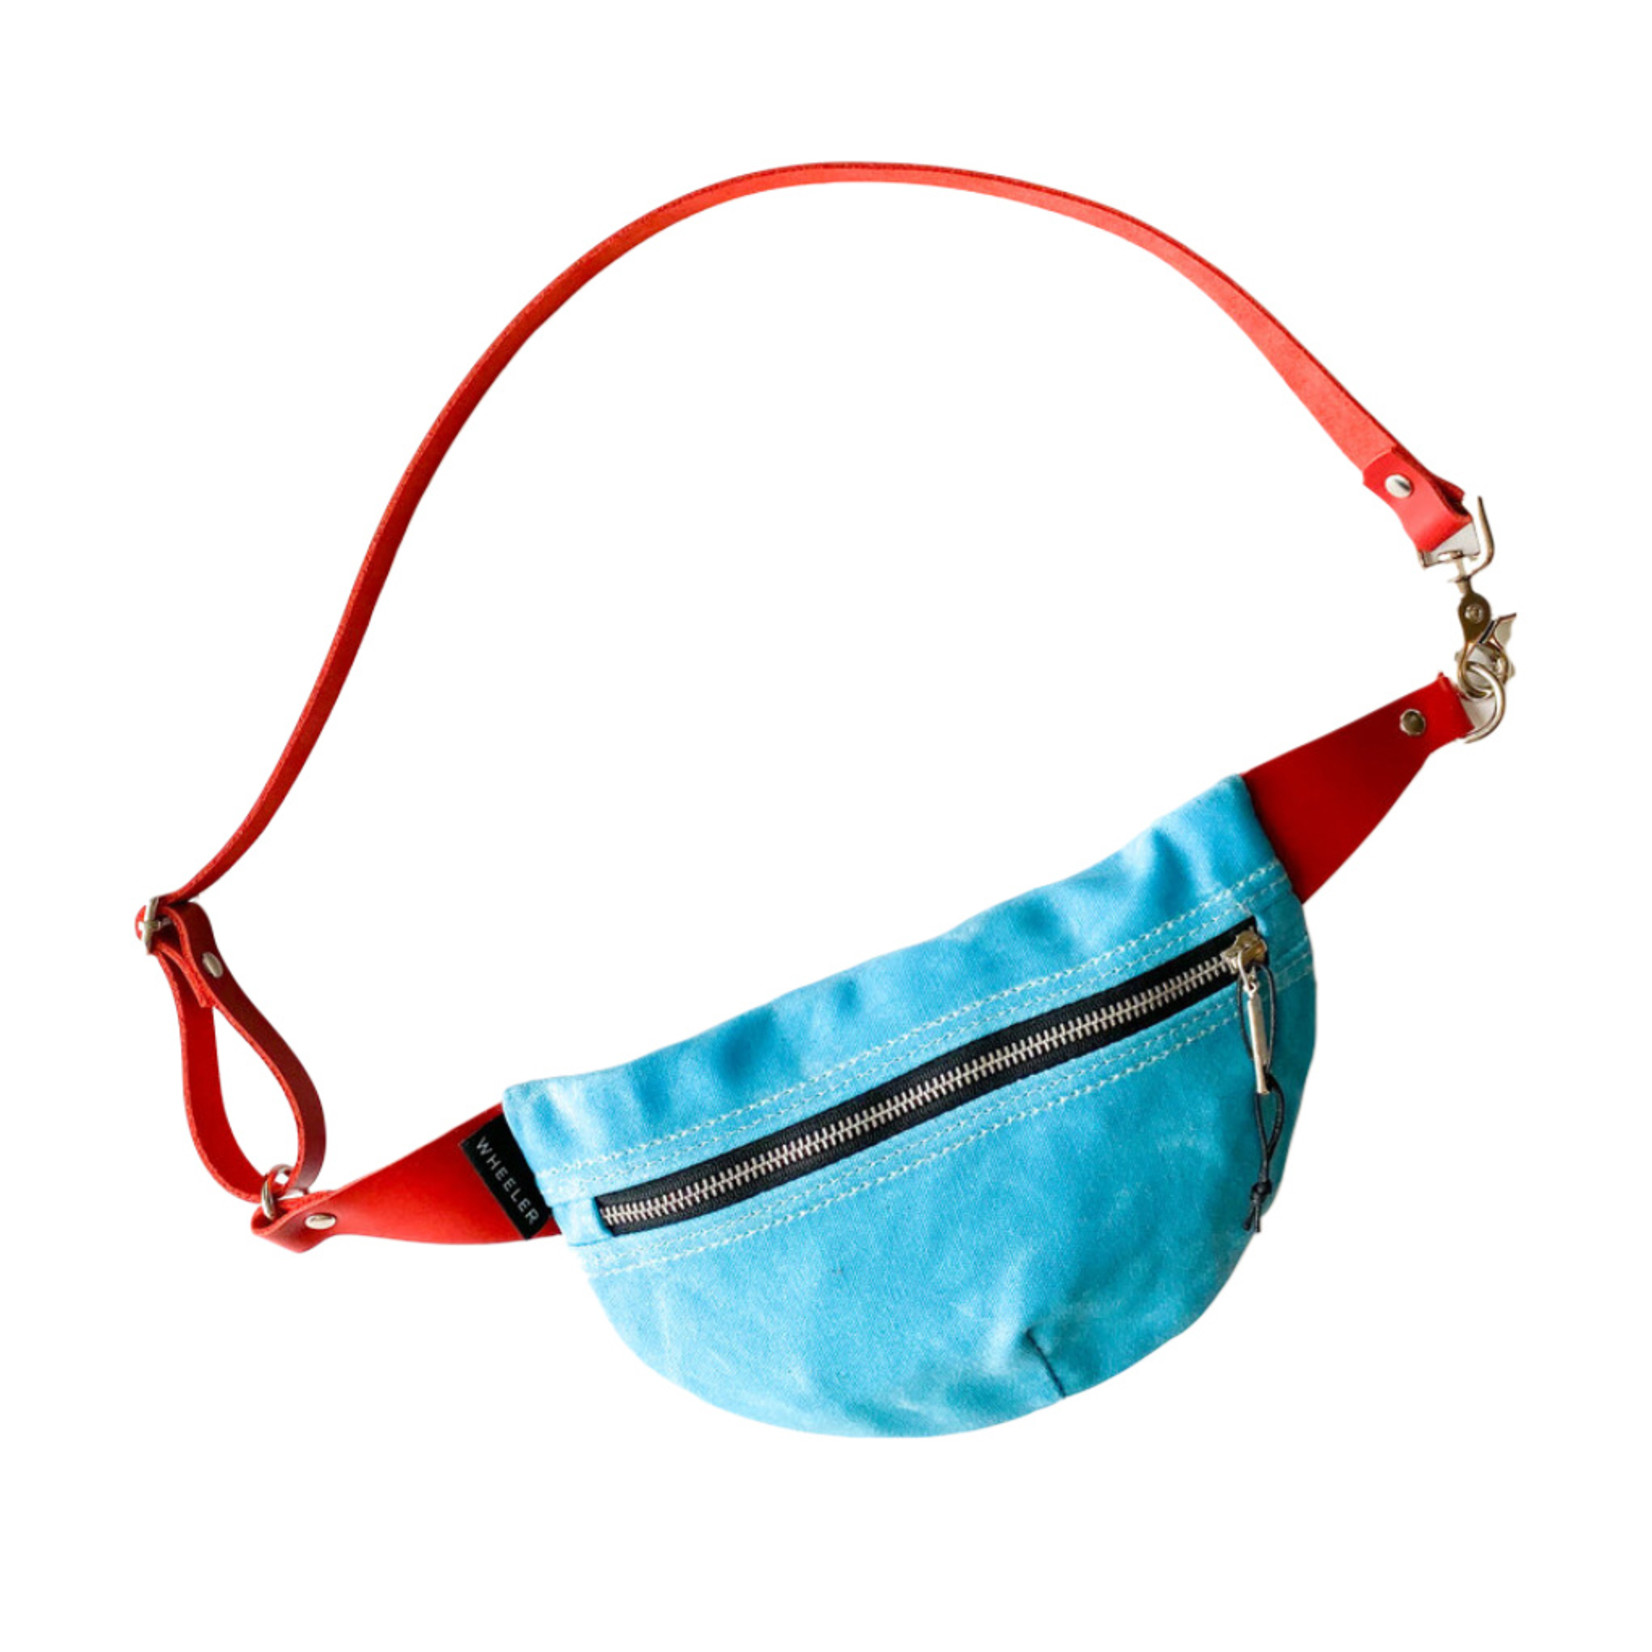 Wheeler Bag Co. Fanny Pack Turquoise/Red